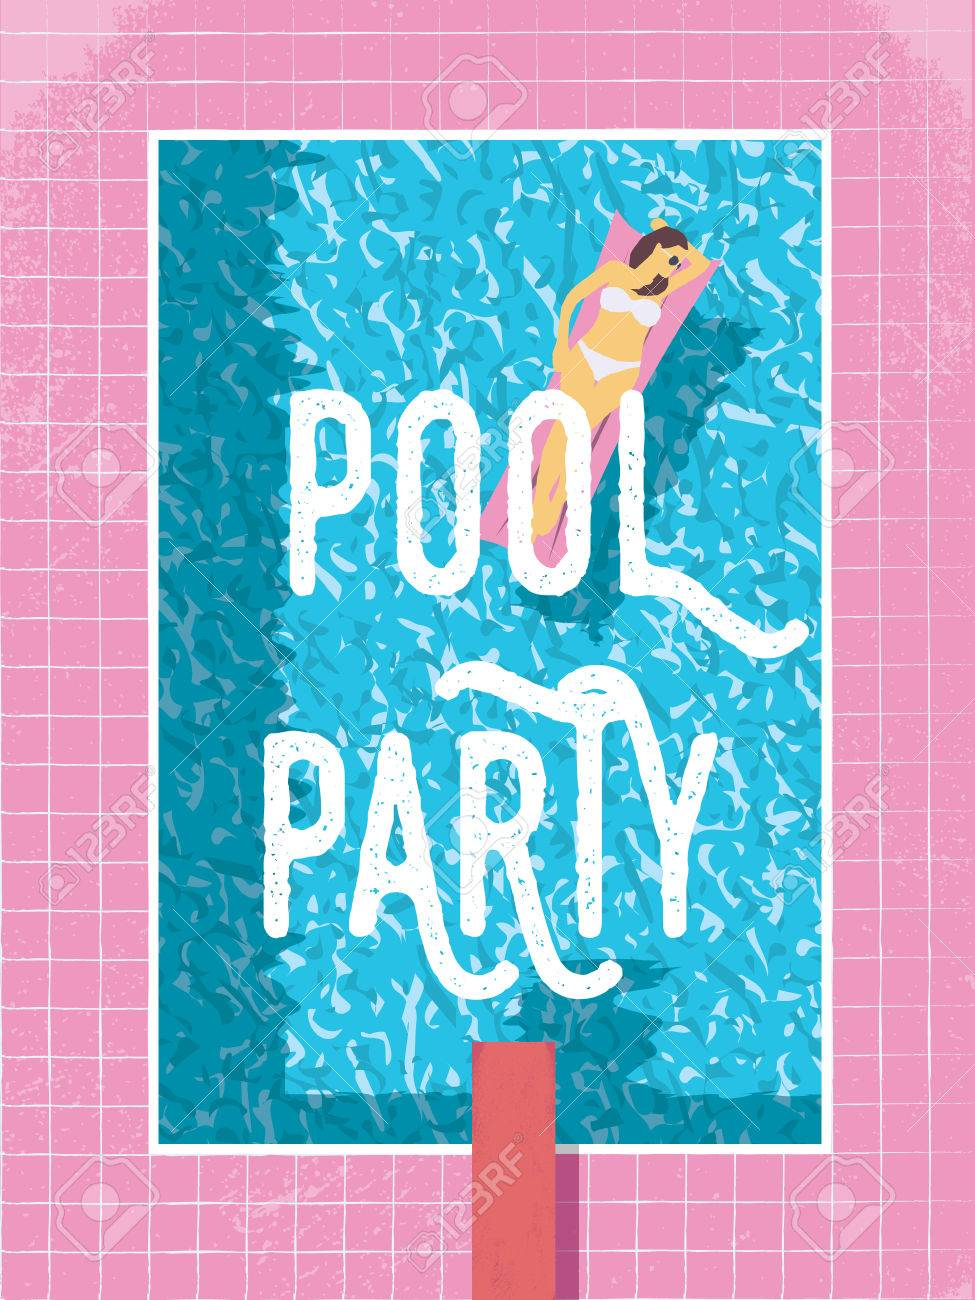 Pool party poster template with woman in bikini sunbathing. 80s retro vintage style vector illustration. - 55668827